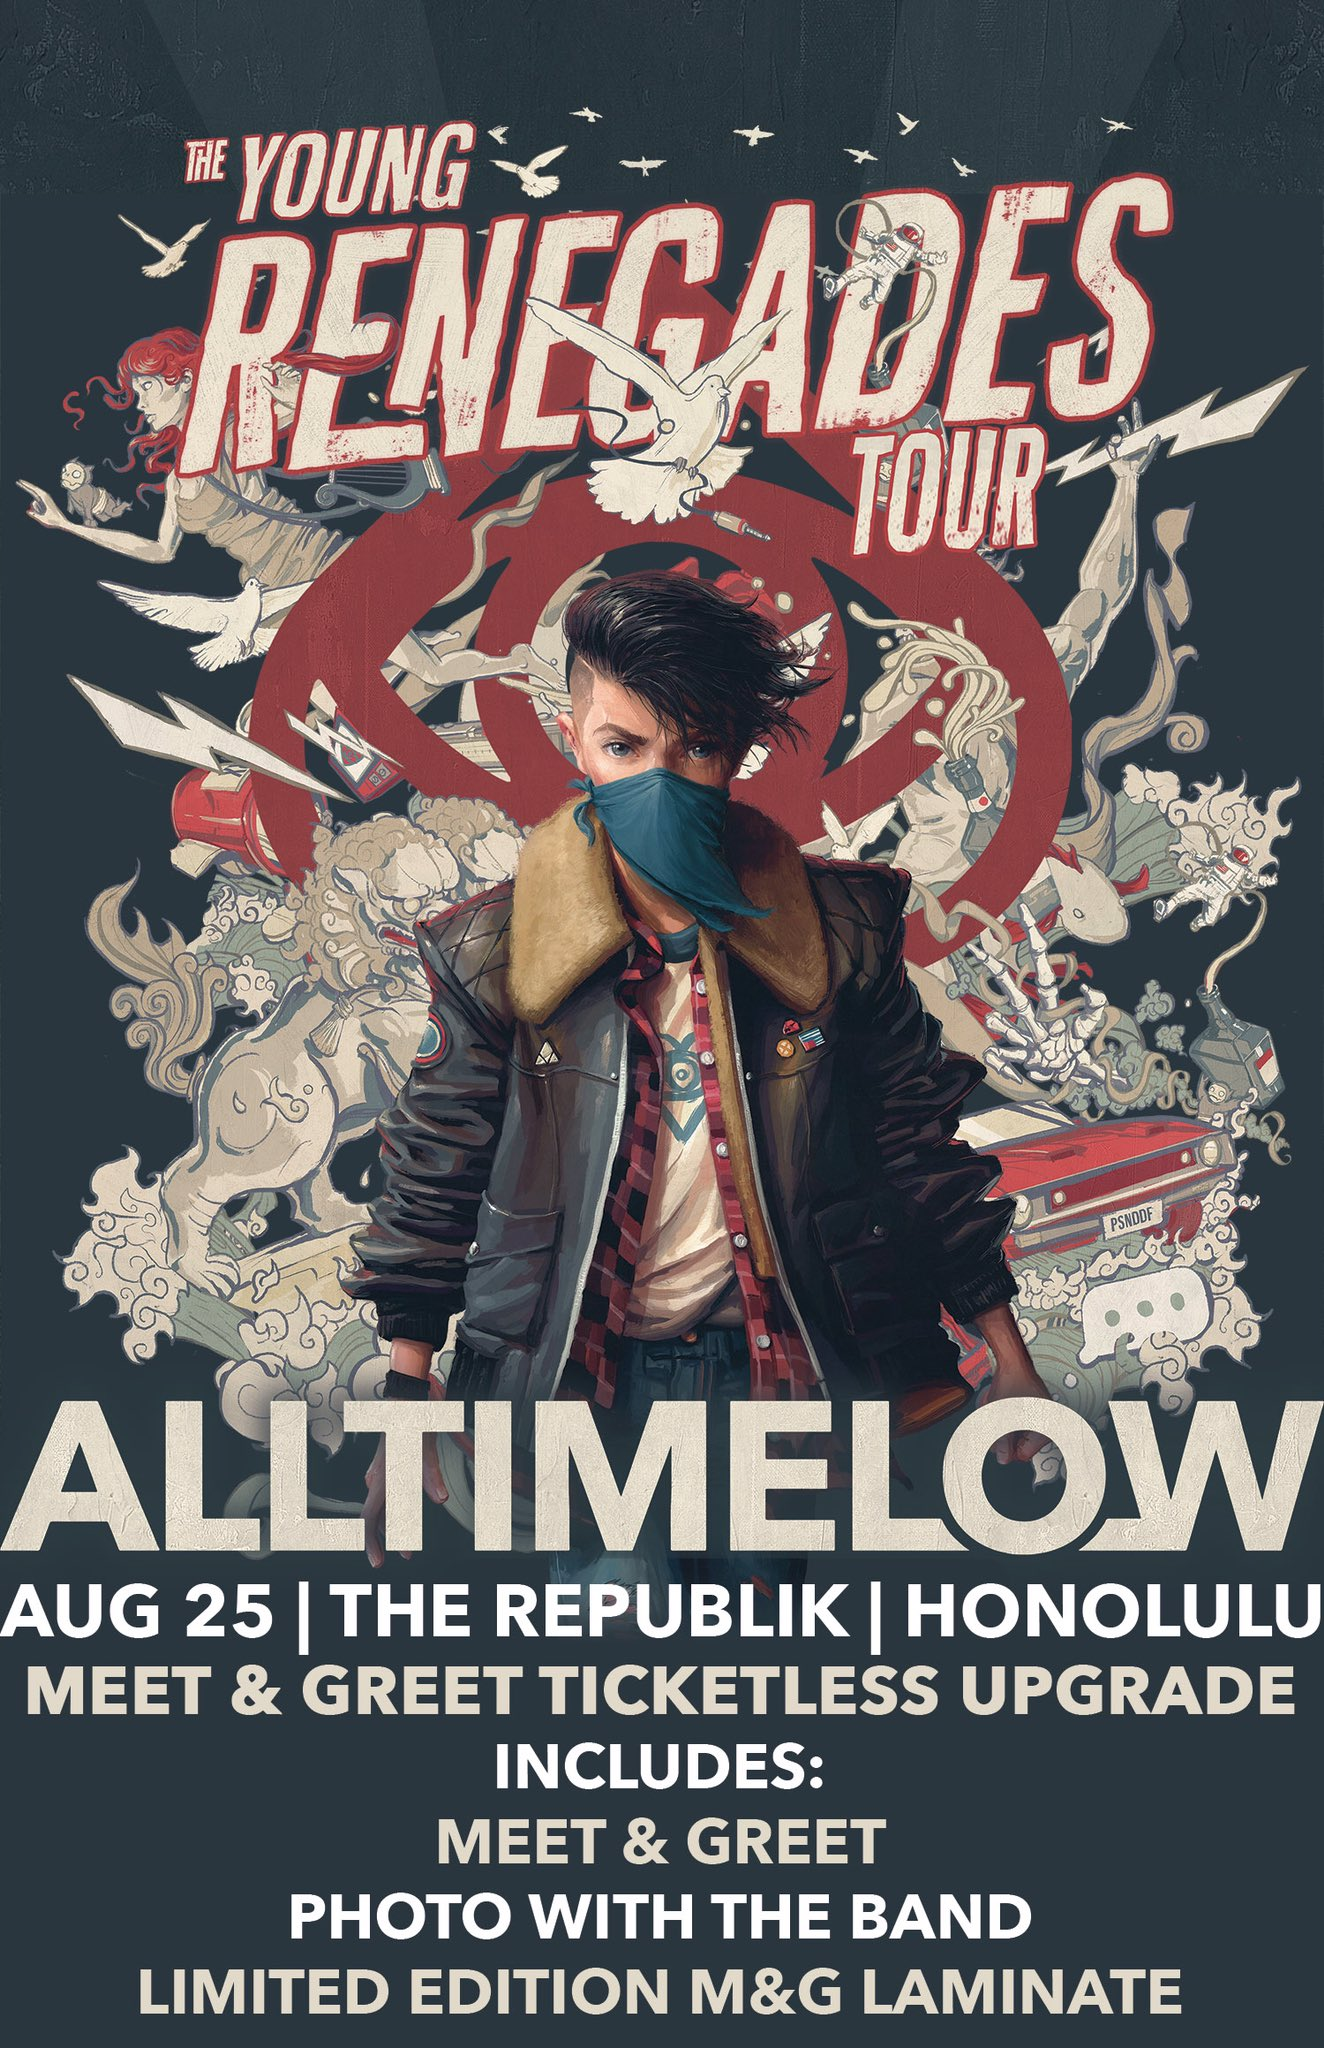 All Time Low On Twitter Ticketless Meet Greet Upgrades Are